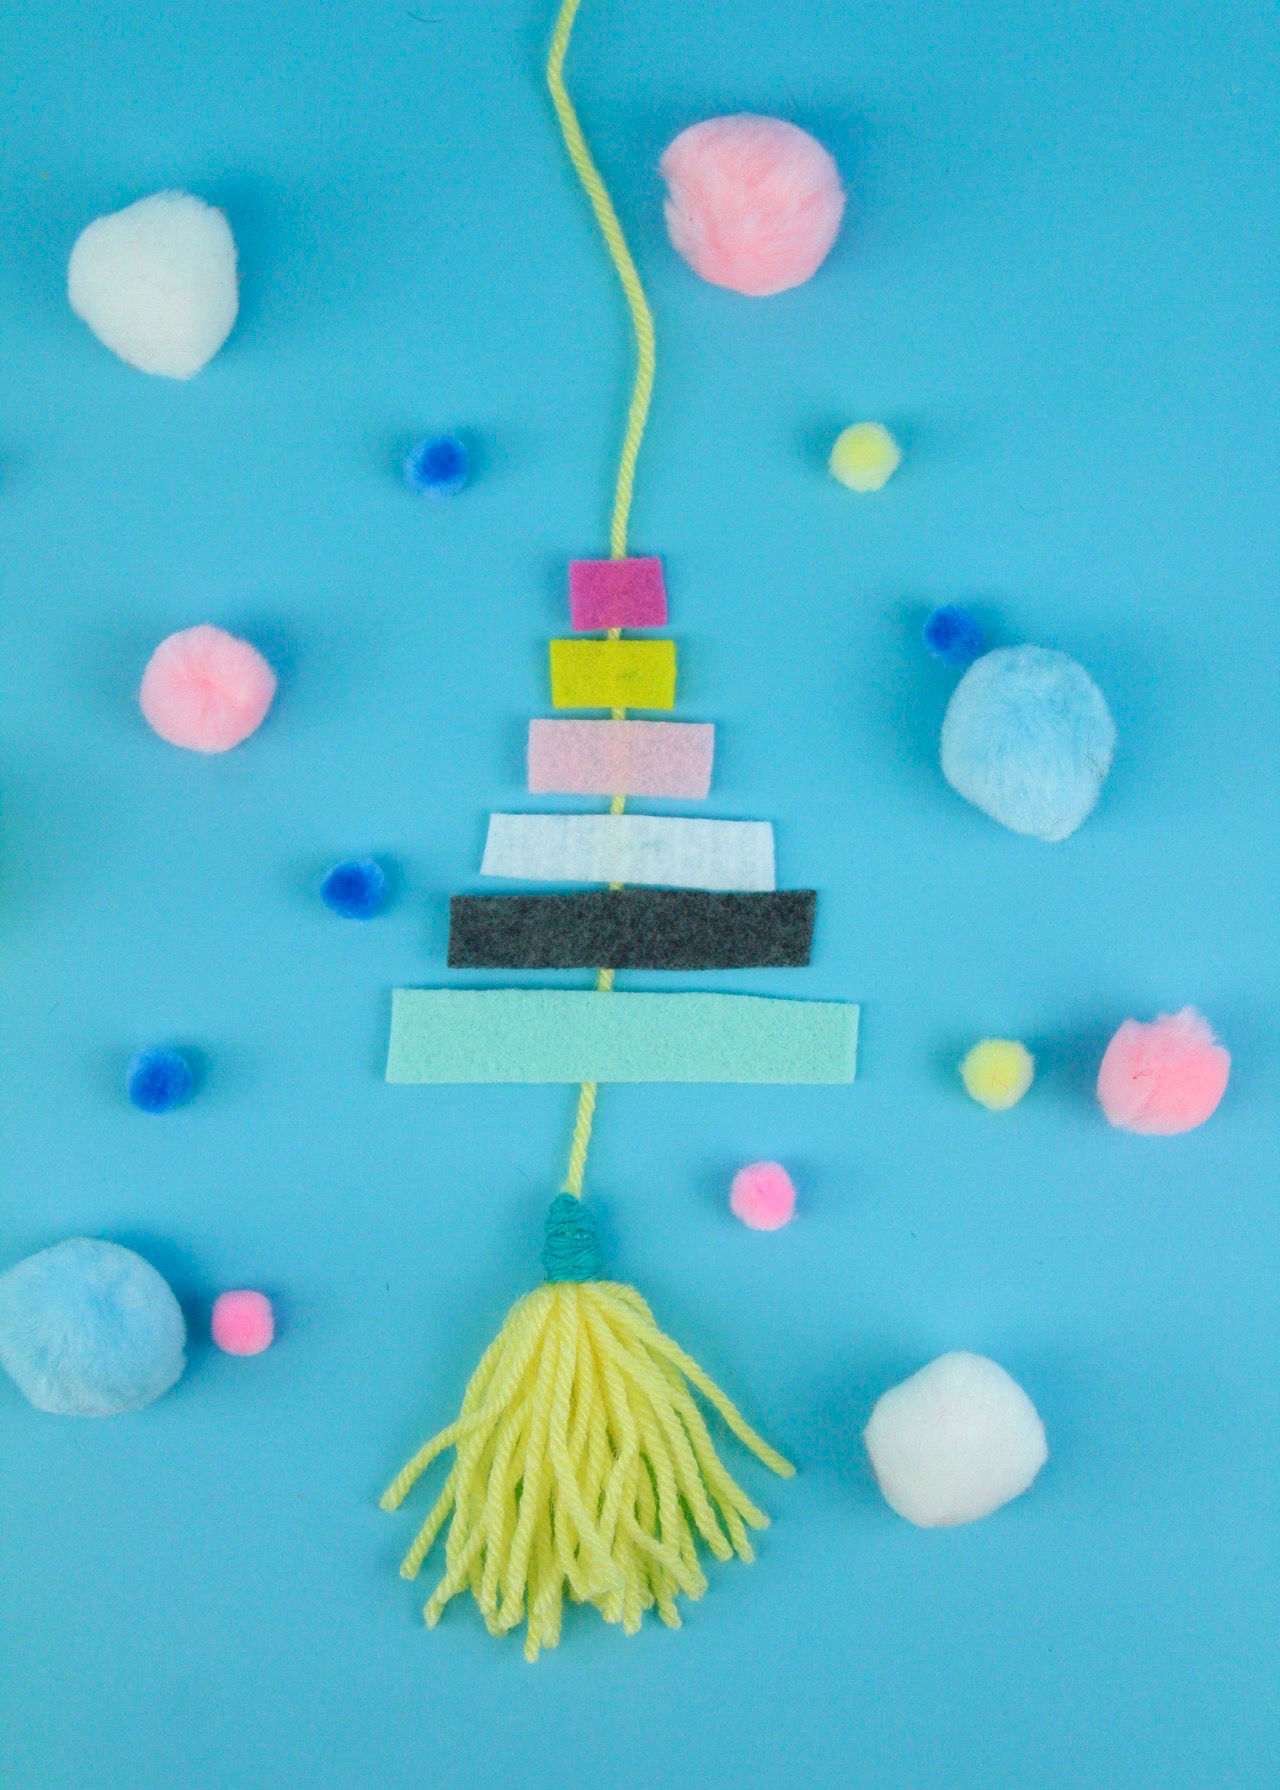 Christmas Crafts For Kids.Easy Christmas Crafts For Kids A Little Craft In Your Day